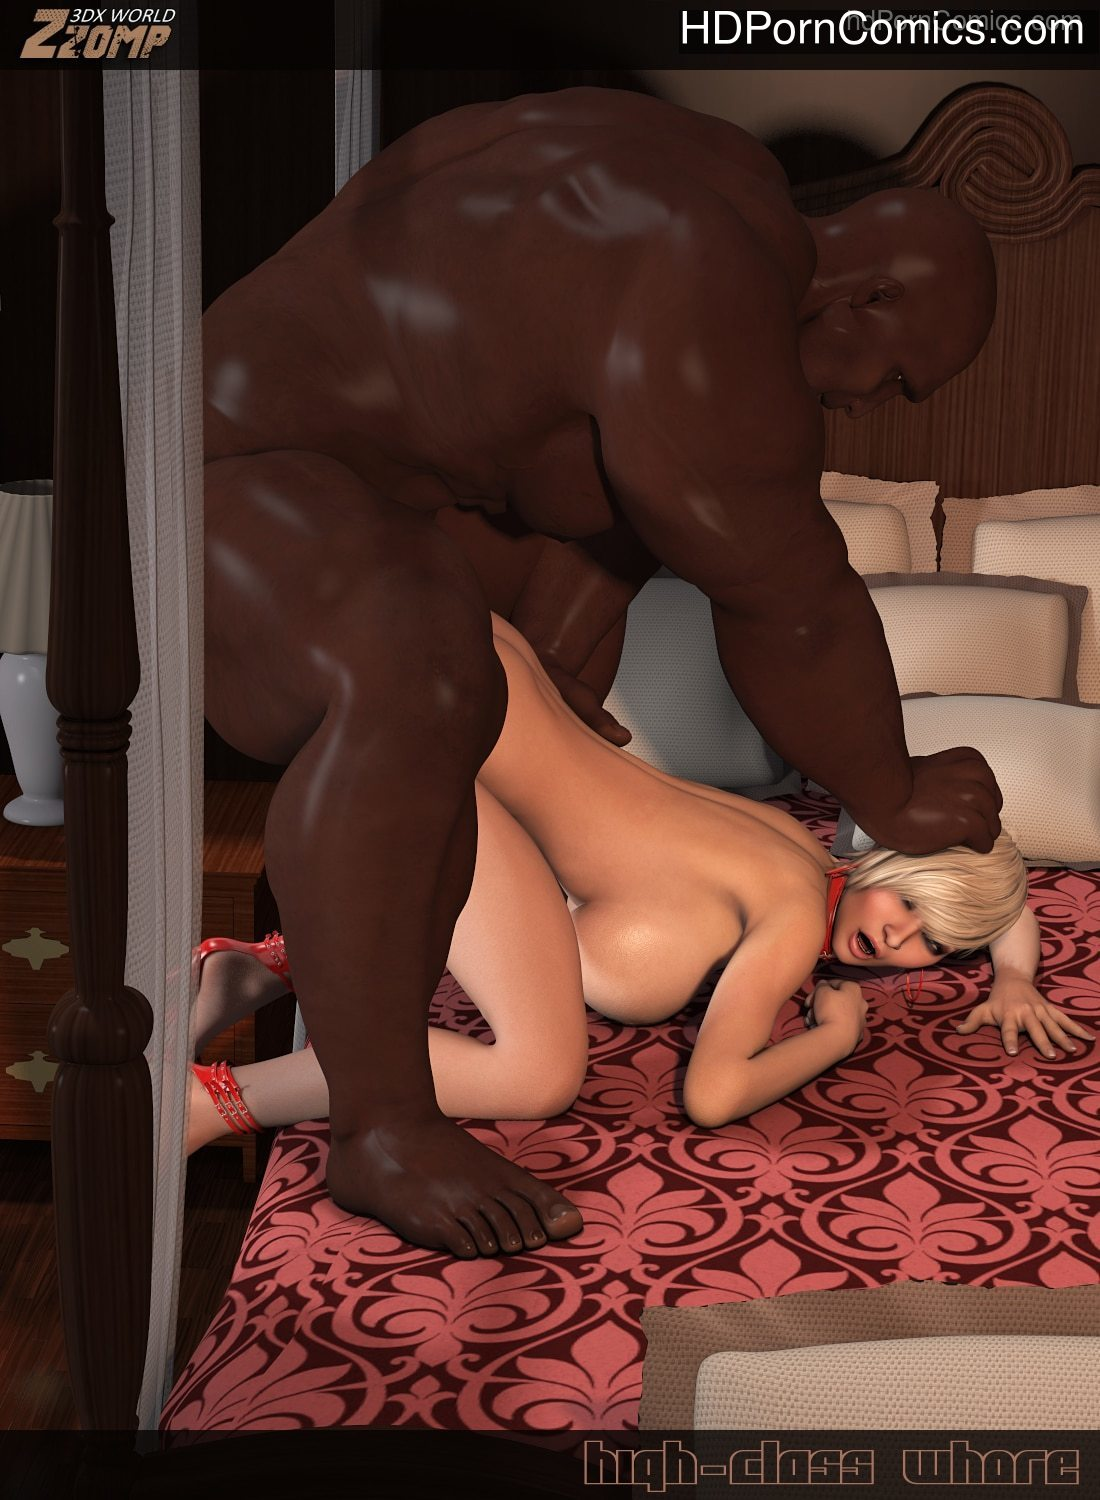 3D COMICS-Zzomp- High-Class Whore 221 free sex comic